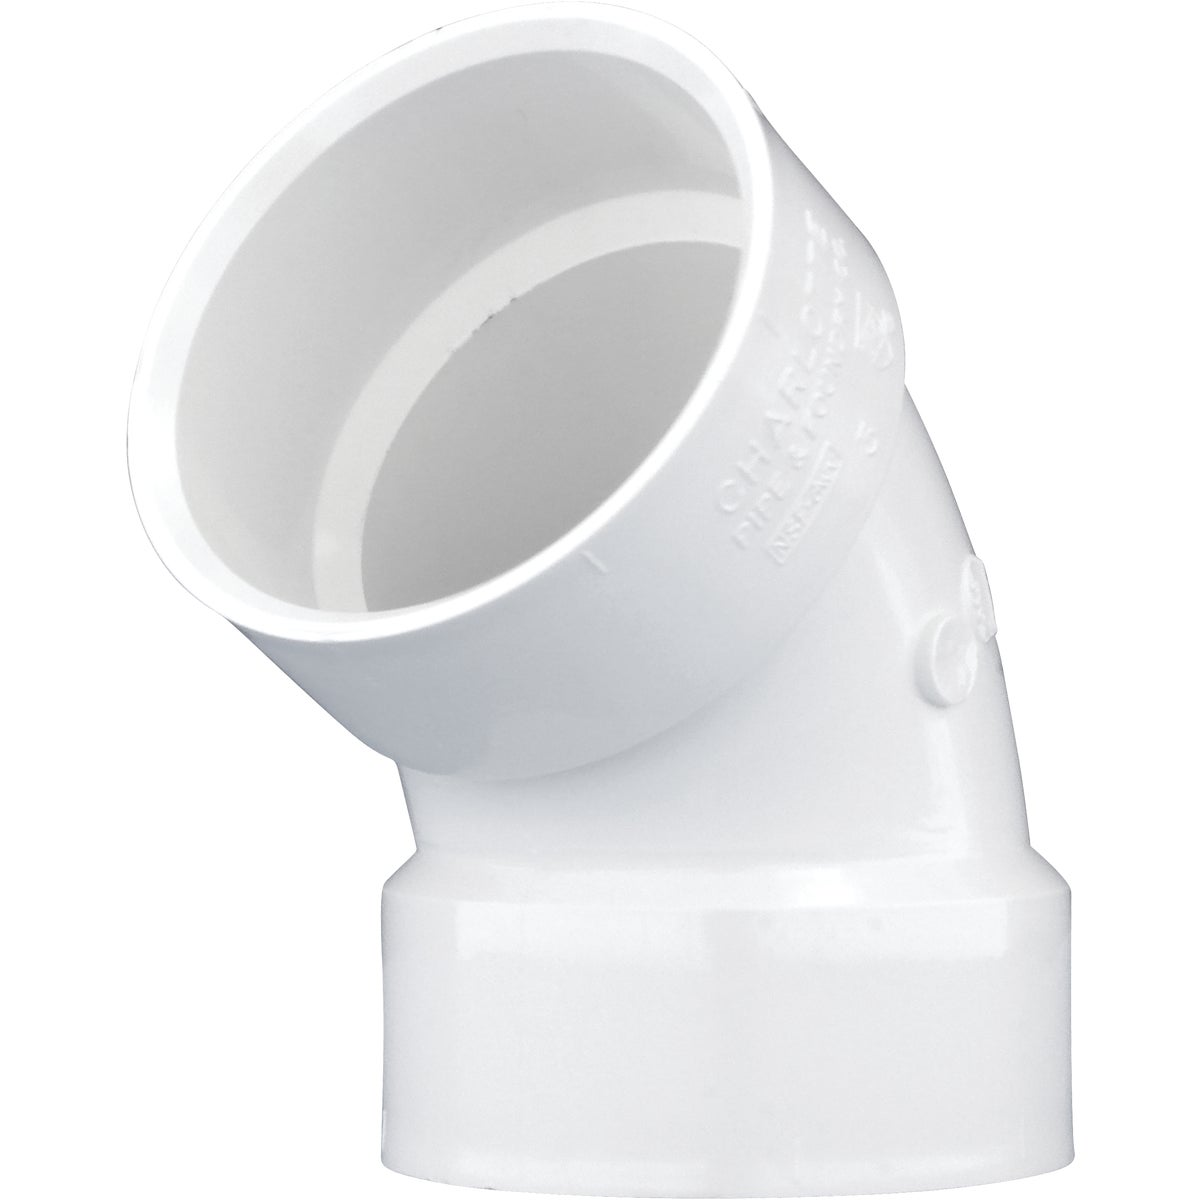 "3"" 60D PVC-DWV ELBOW - 70930 by Genova Inc  Pvc Dwv"